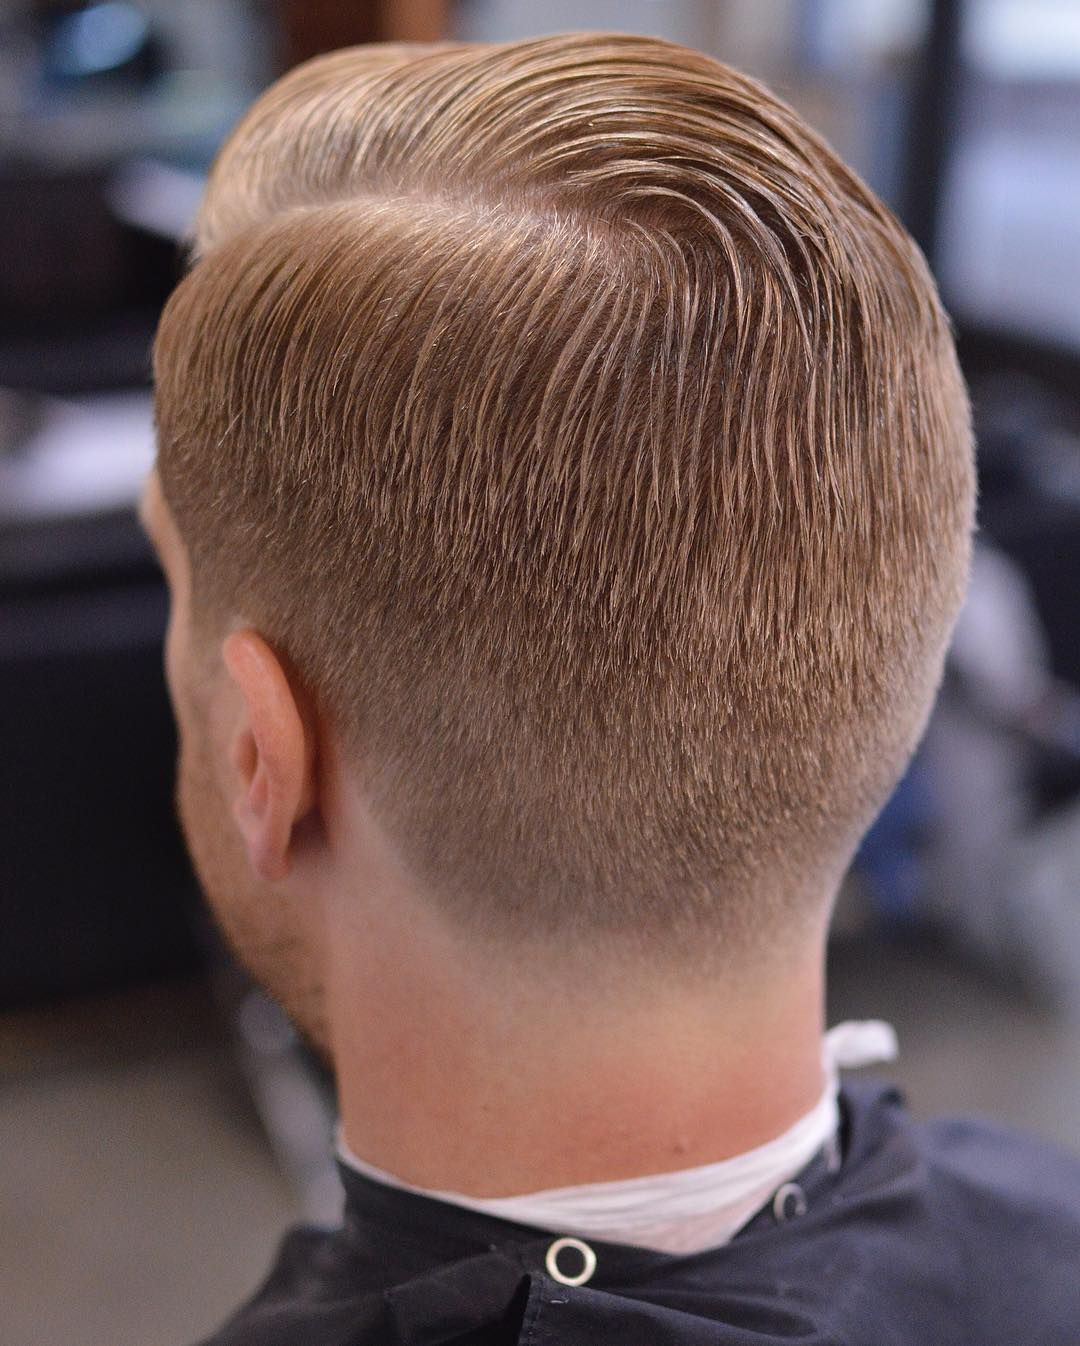 Look Well It Pays Quarter Inch On The Sides Parted Textured And Tapered In The Back Hairstyles For School Easy Hairstyles Easy Hairstyles For School